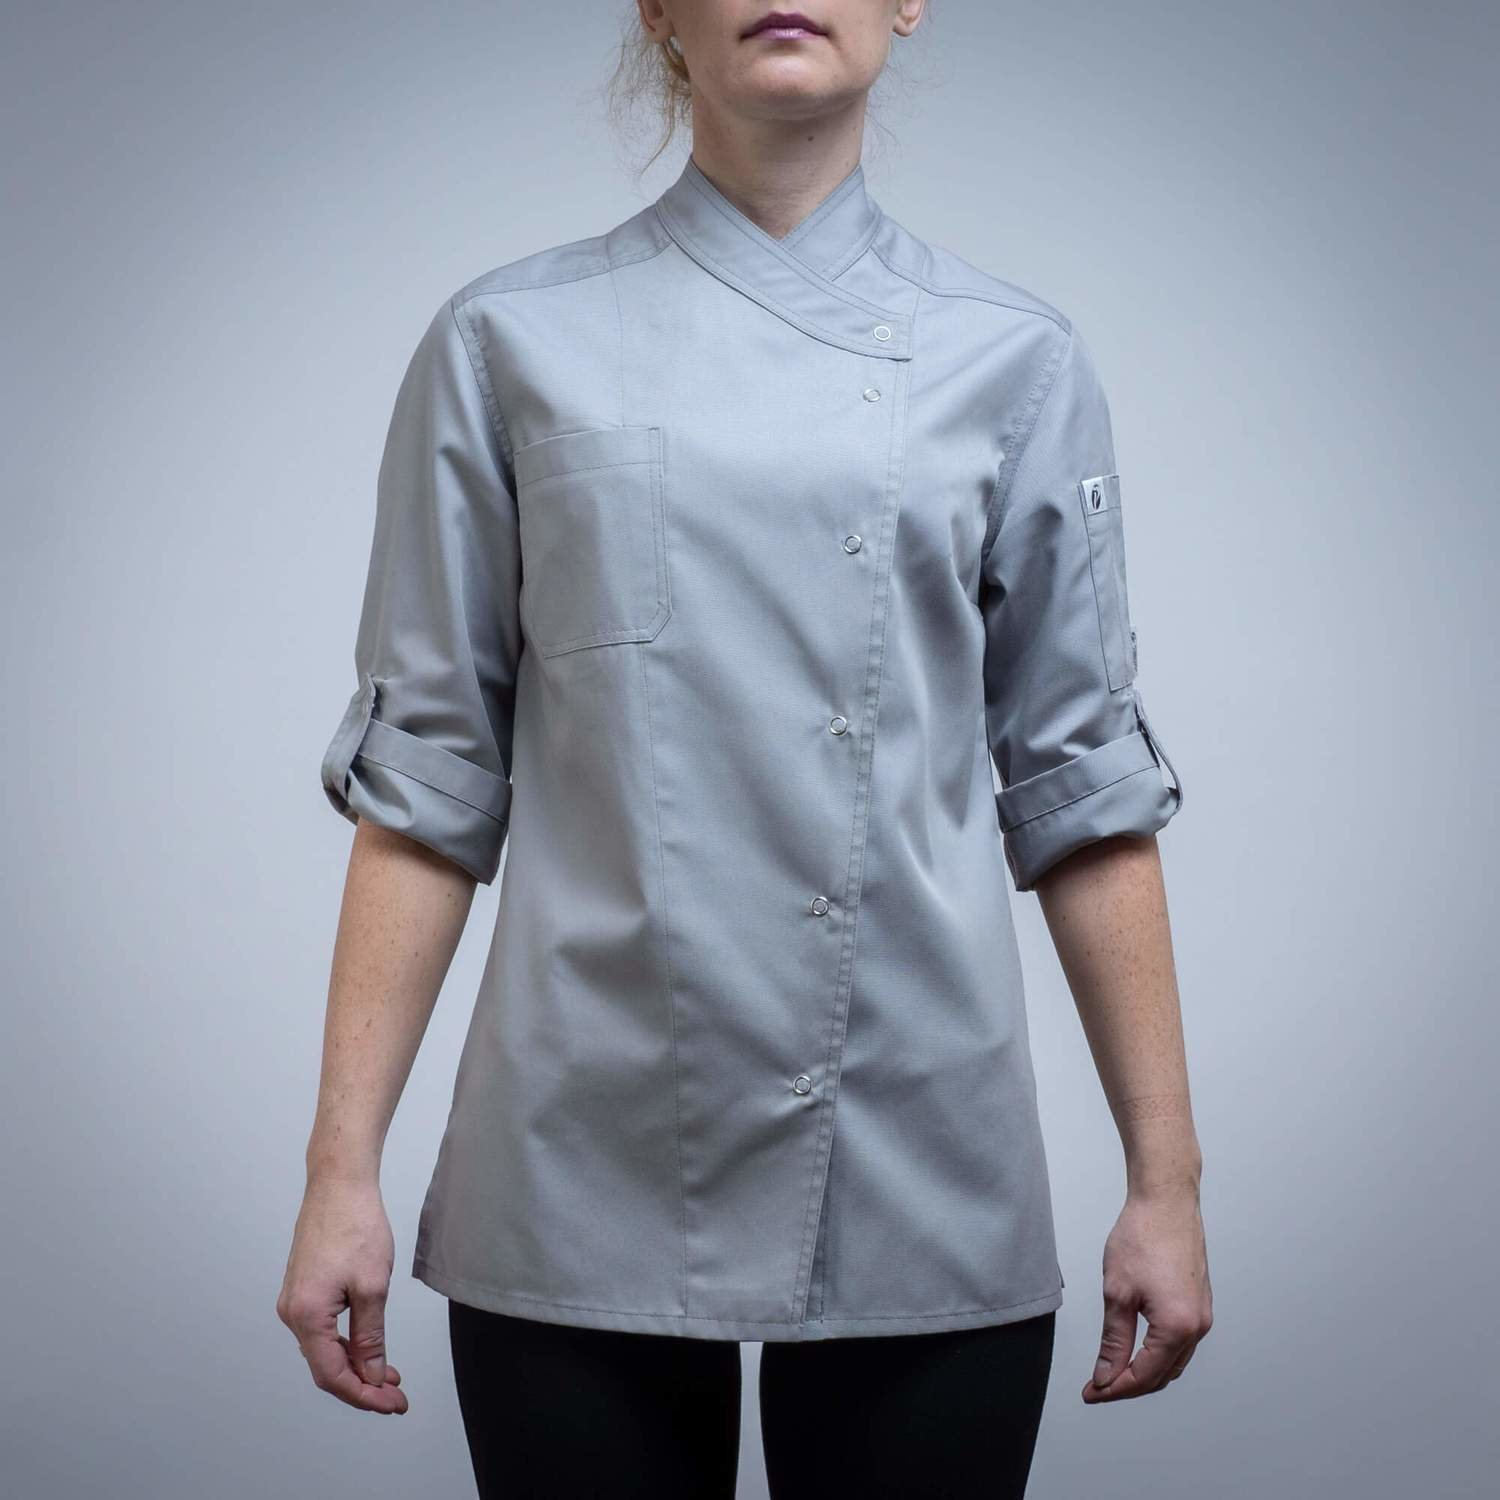 547GR - CHEF'S JACKET